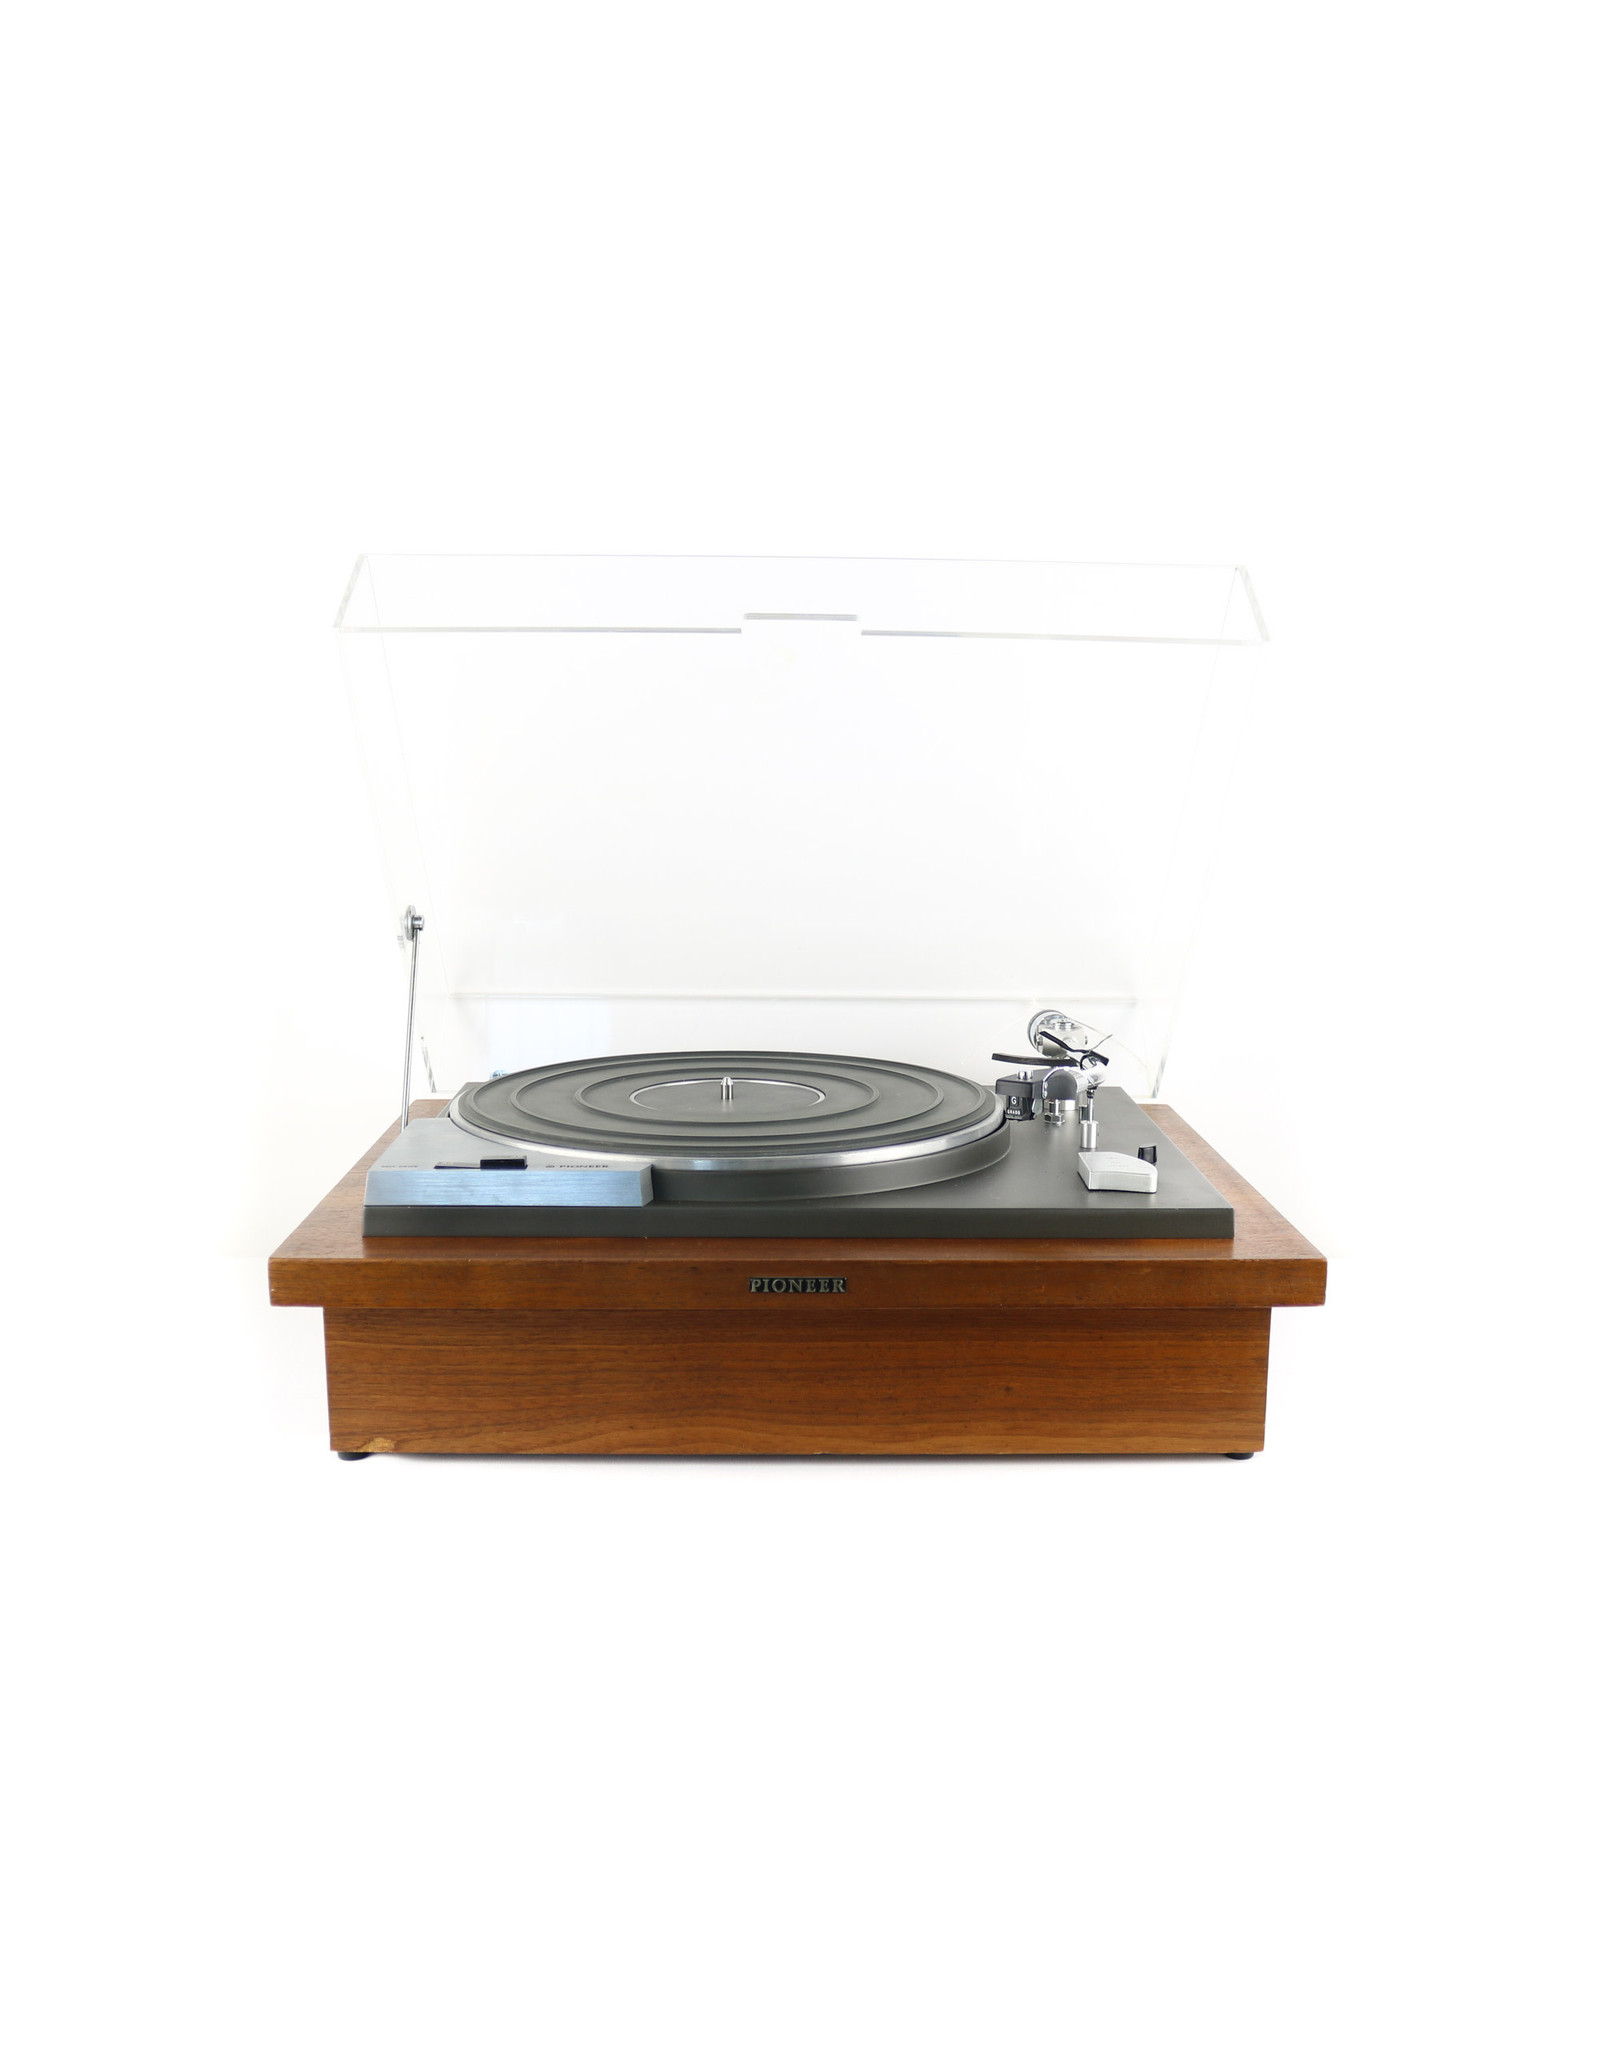 Pioneer Pioneer PL-41 Turntable USED